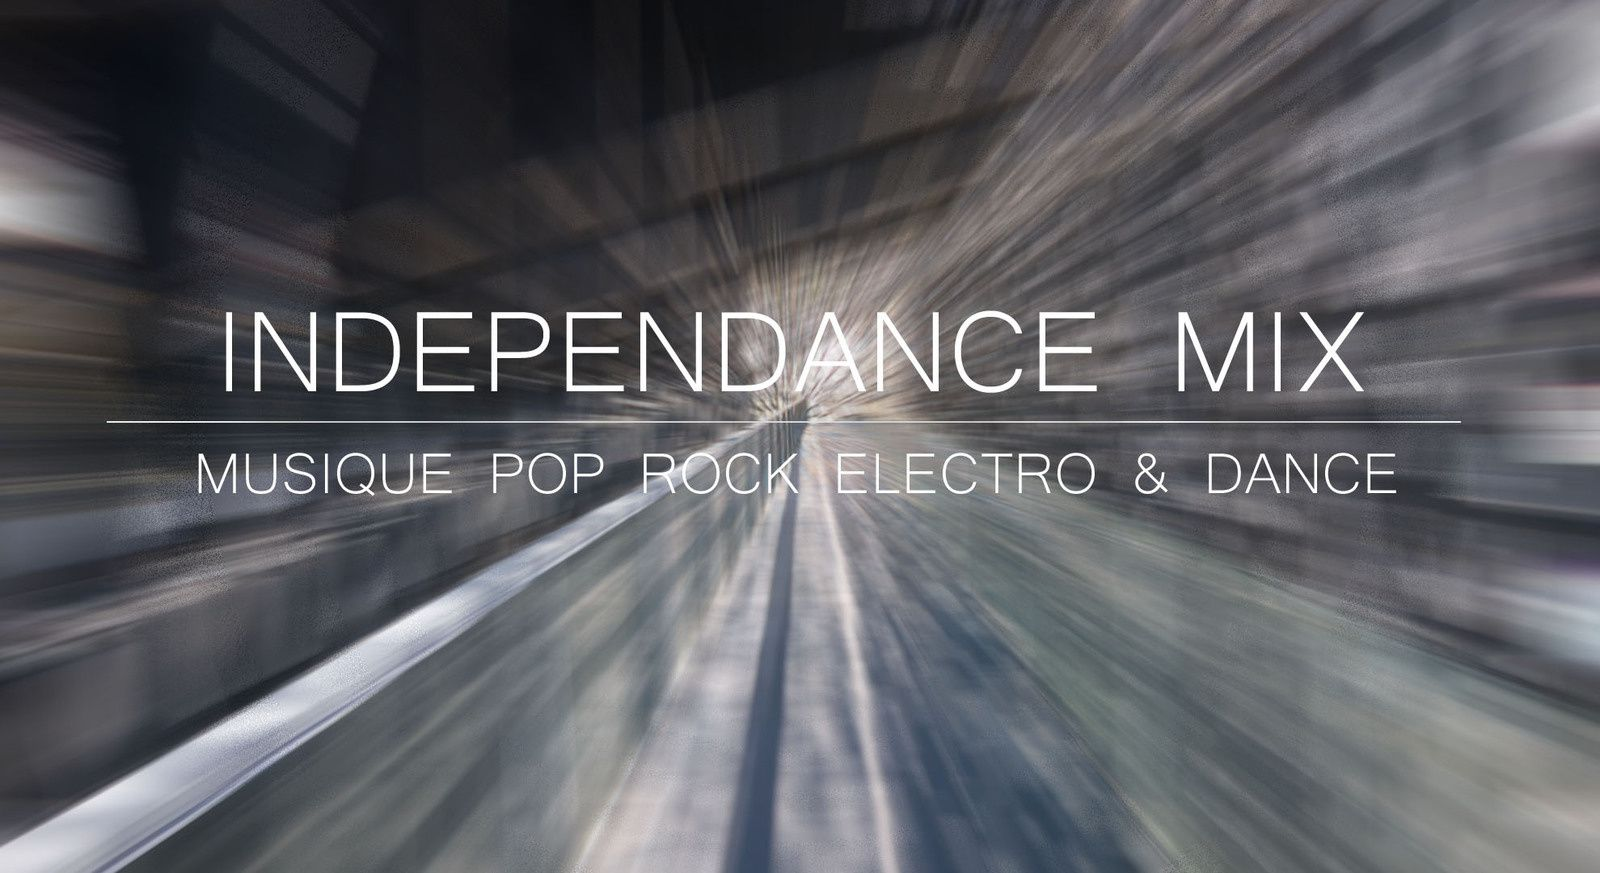 INDEPENDANCE MIX - Vidéoliste n°13